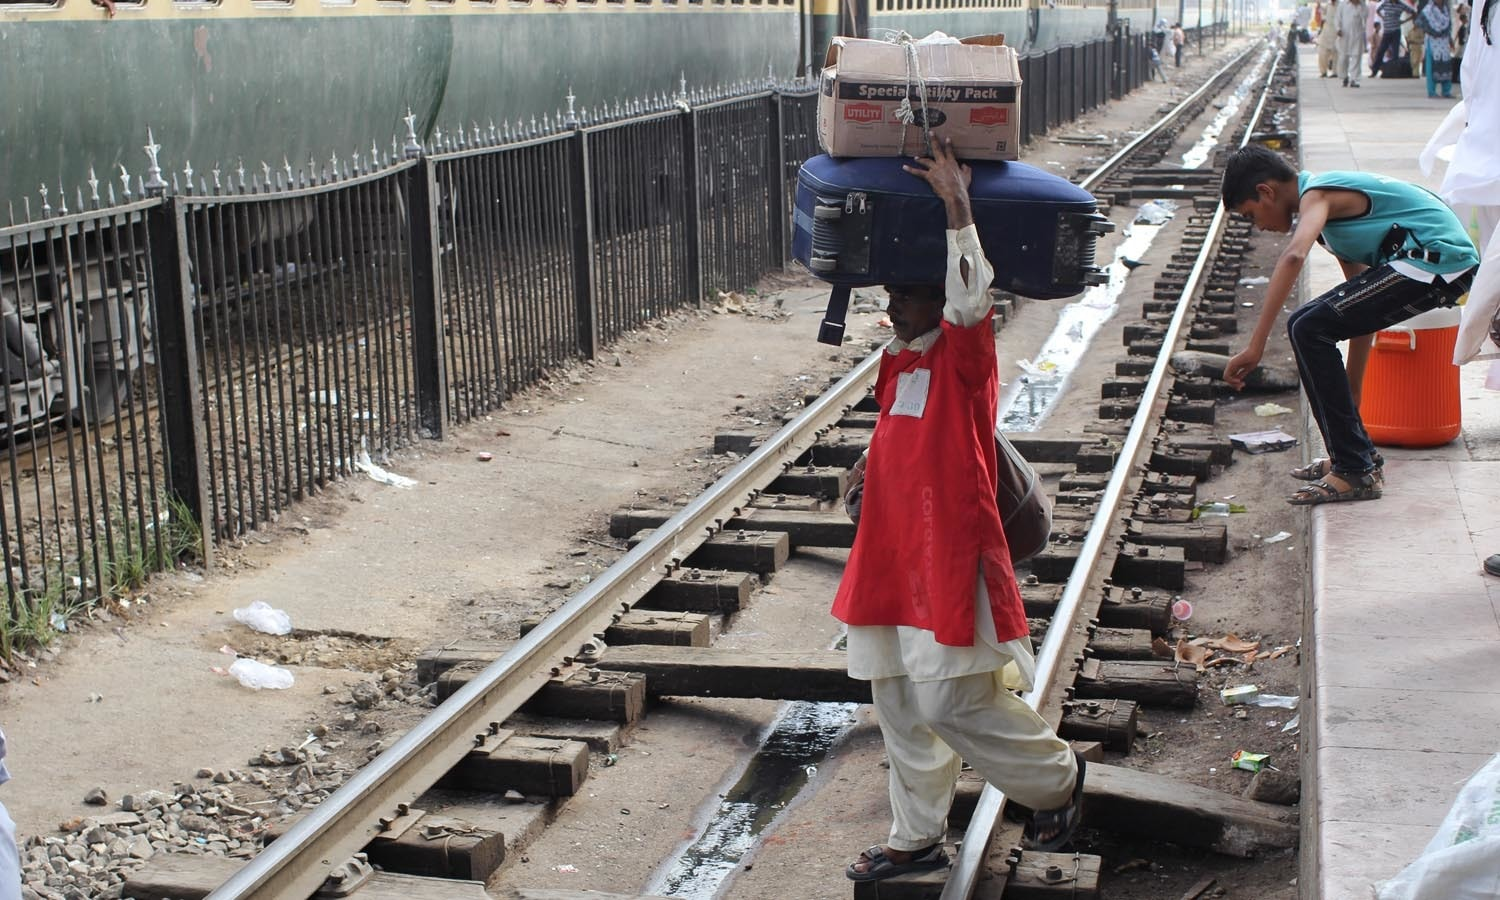 A porter with heavy luggage walks through the track.